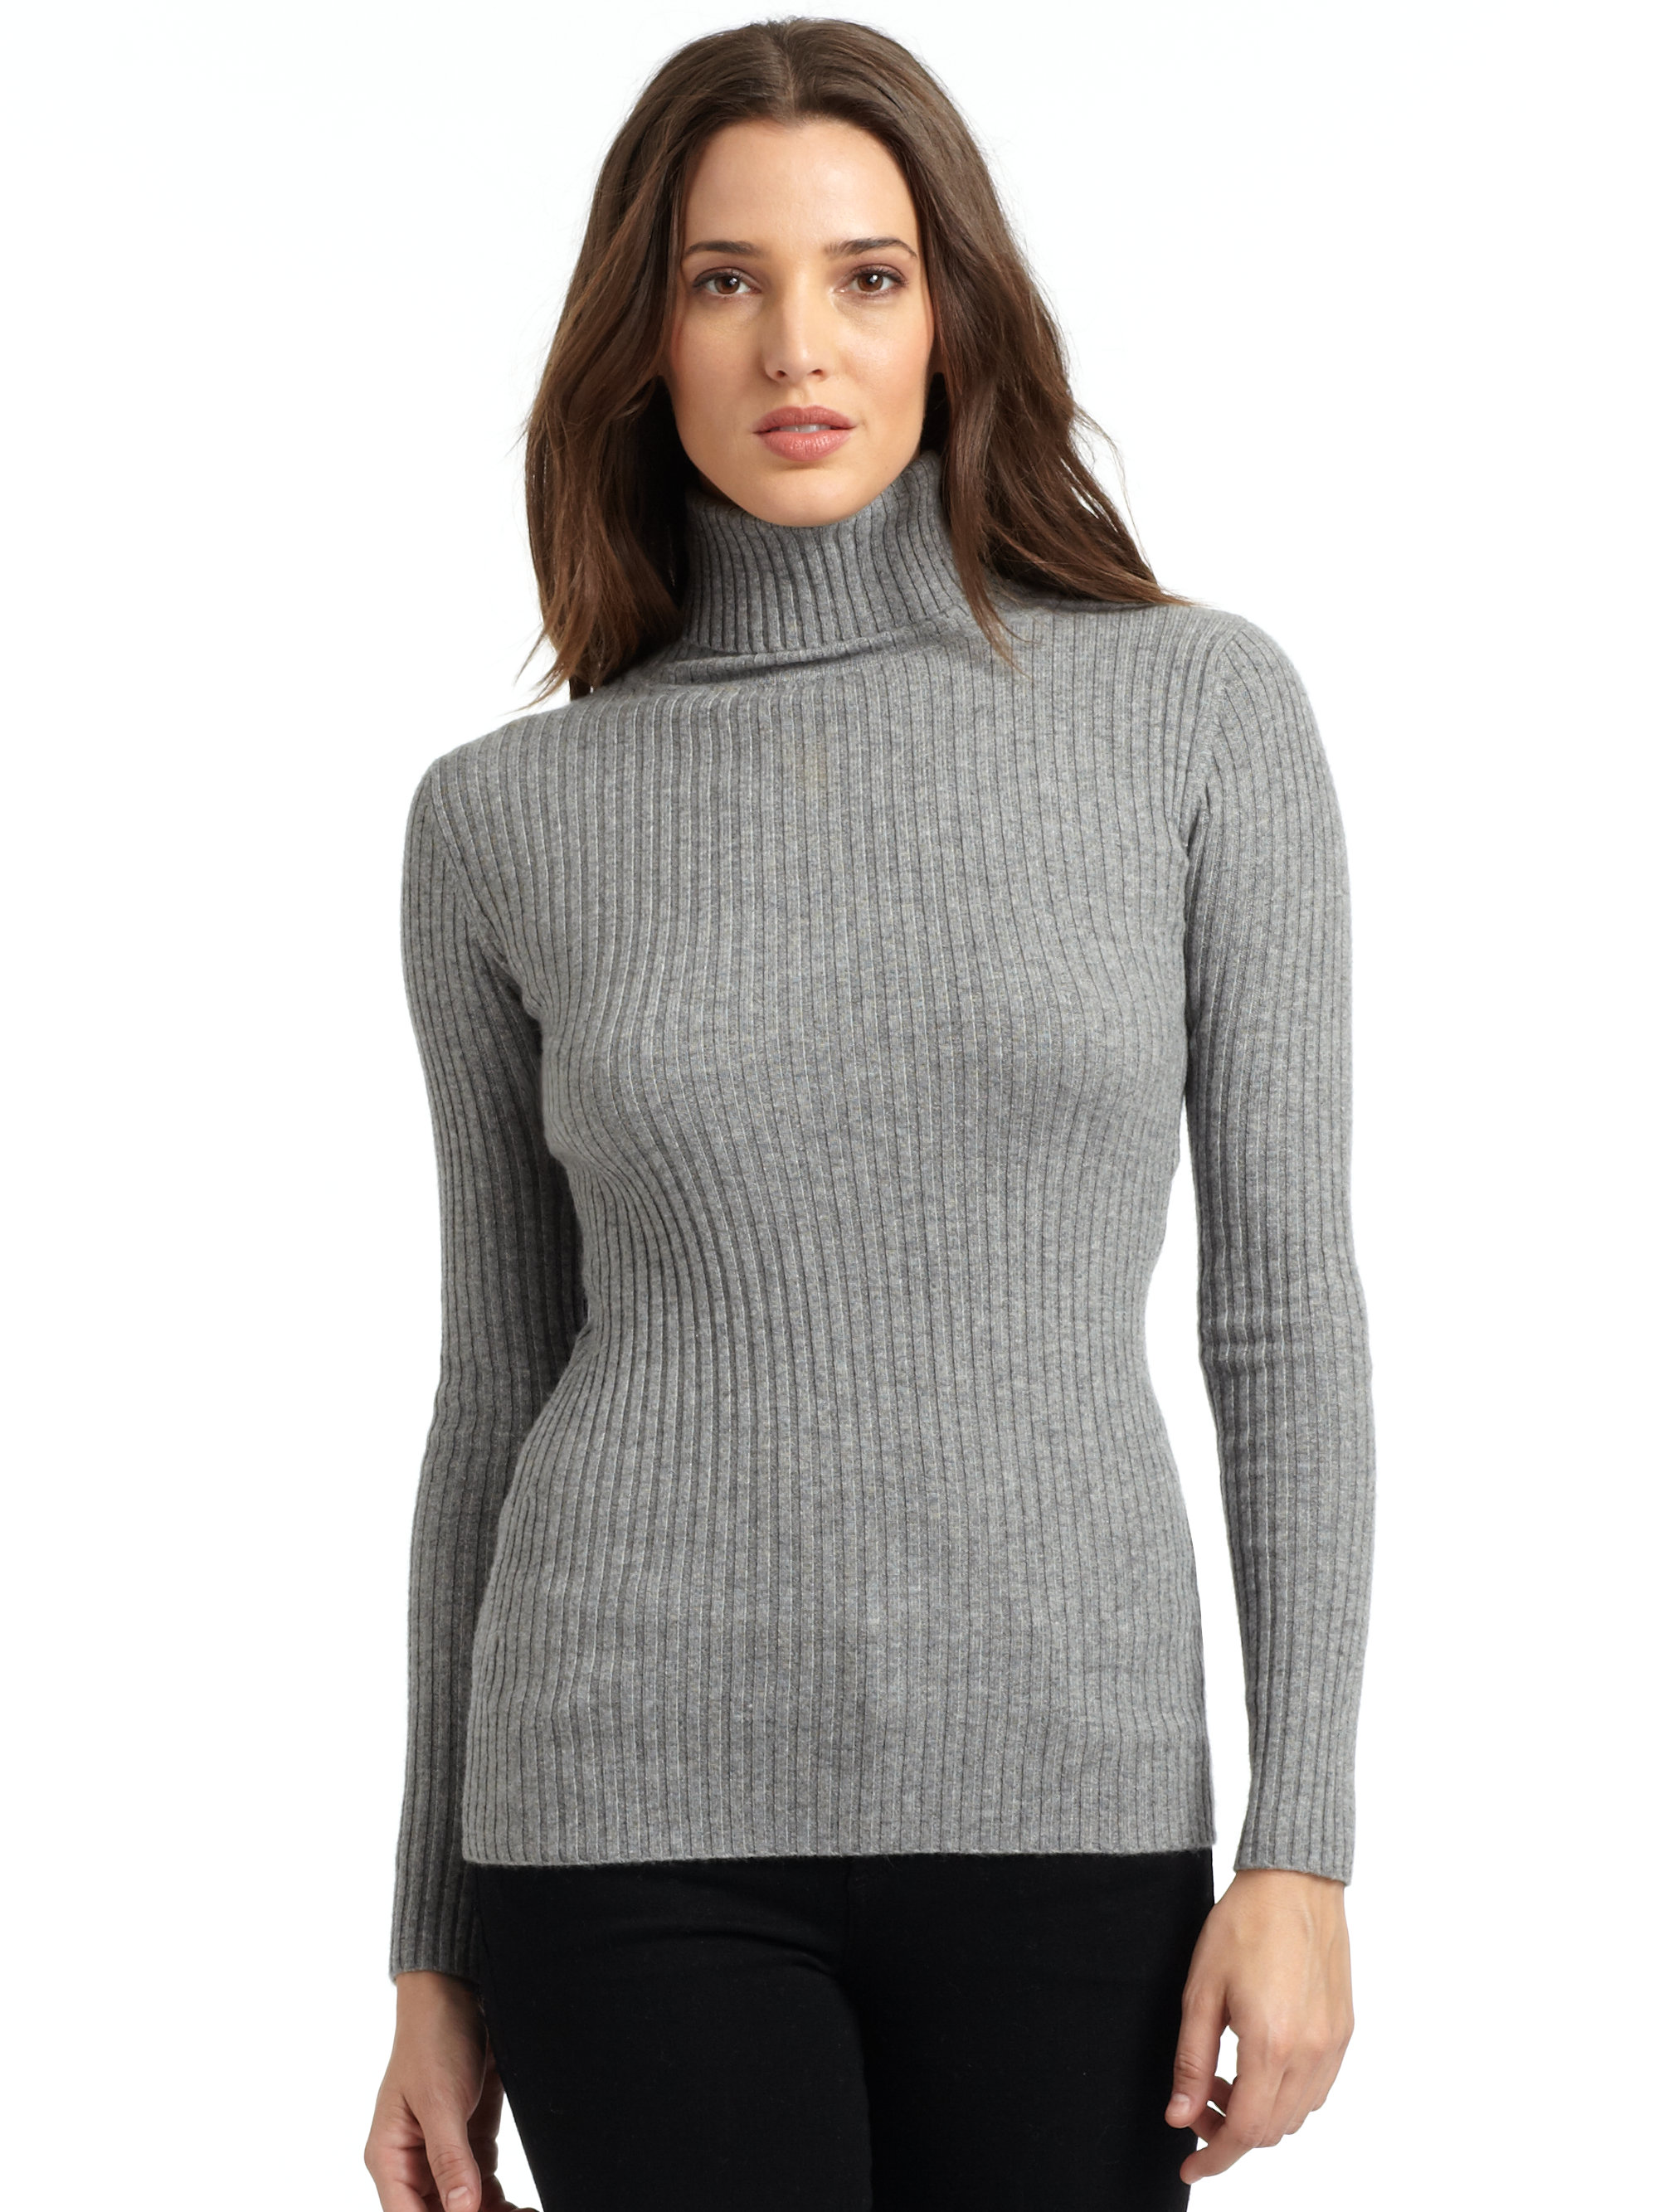 Cashmere Heartland carries a complete inventory of womens mock turtleneck cashmere sweaters in a range of colors, from black, to grey and brown. Choose from our sale priced, fashionable wool cashmere turtlenecks for women.